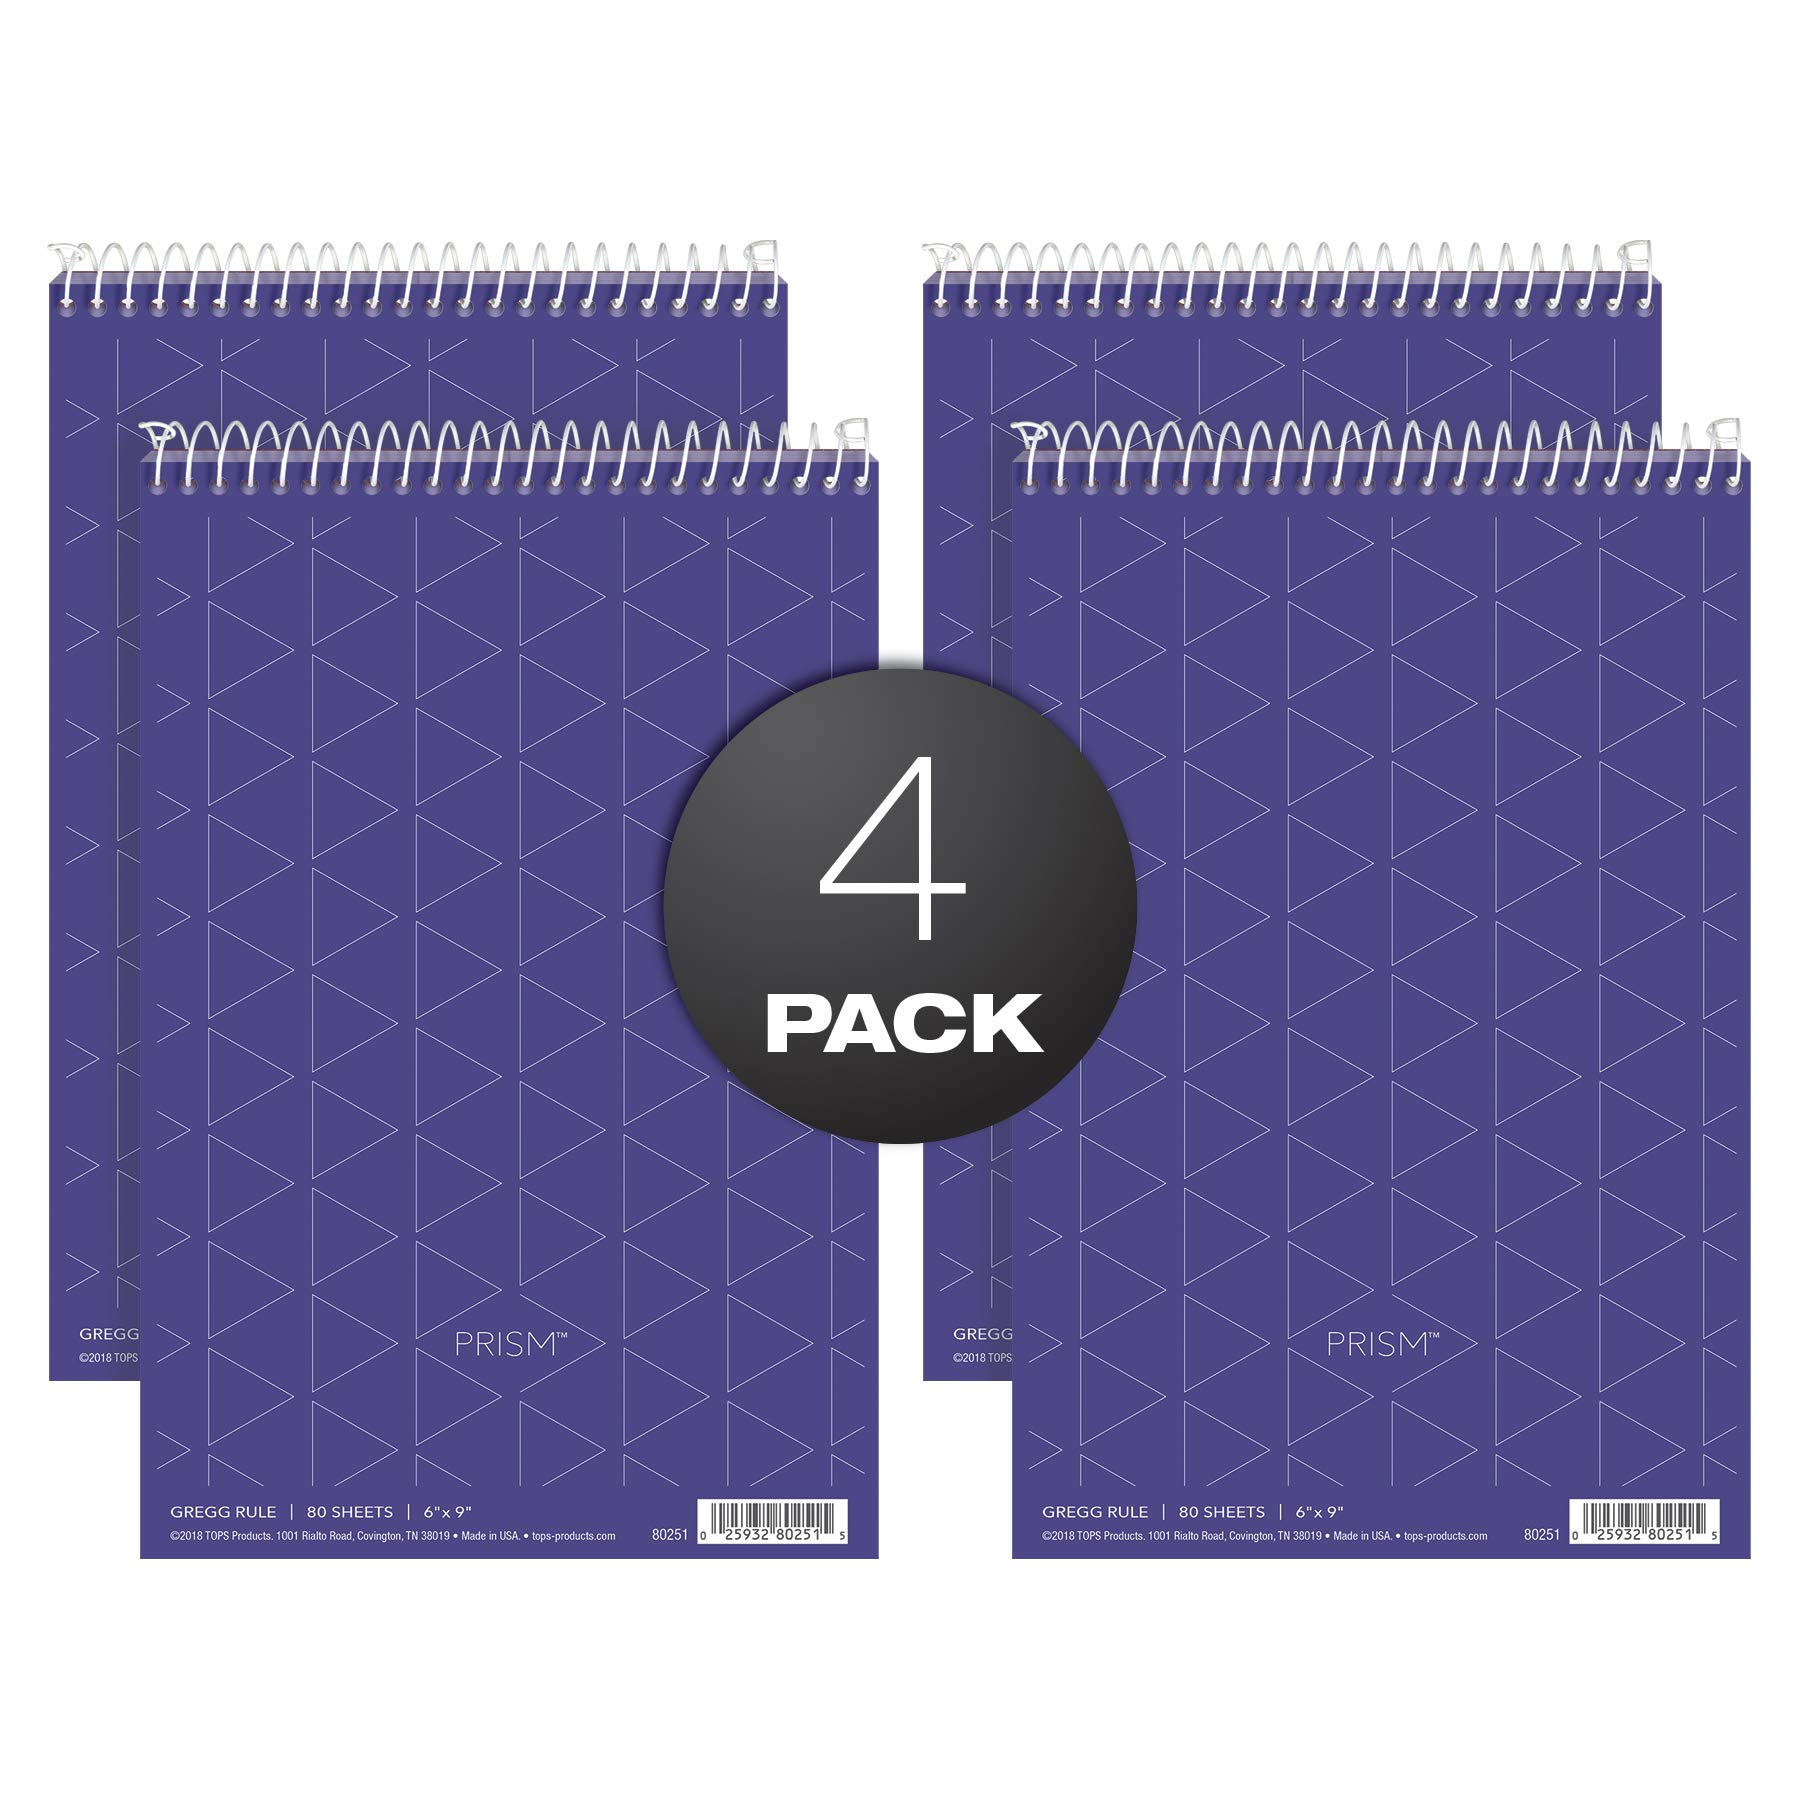 TOPS Gregg Prism Steno Notebooks (TOP80264) by TOPS